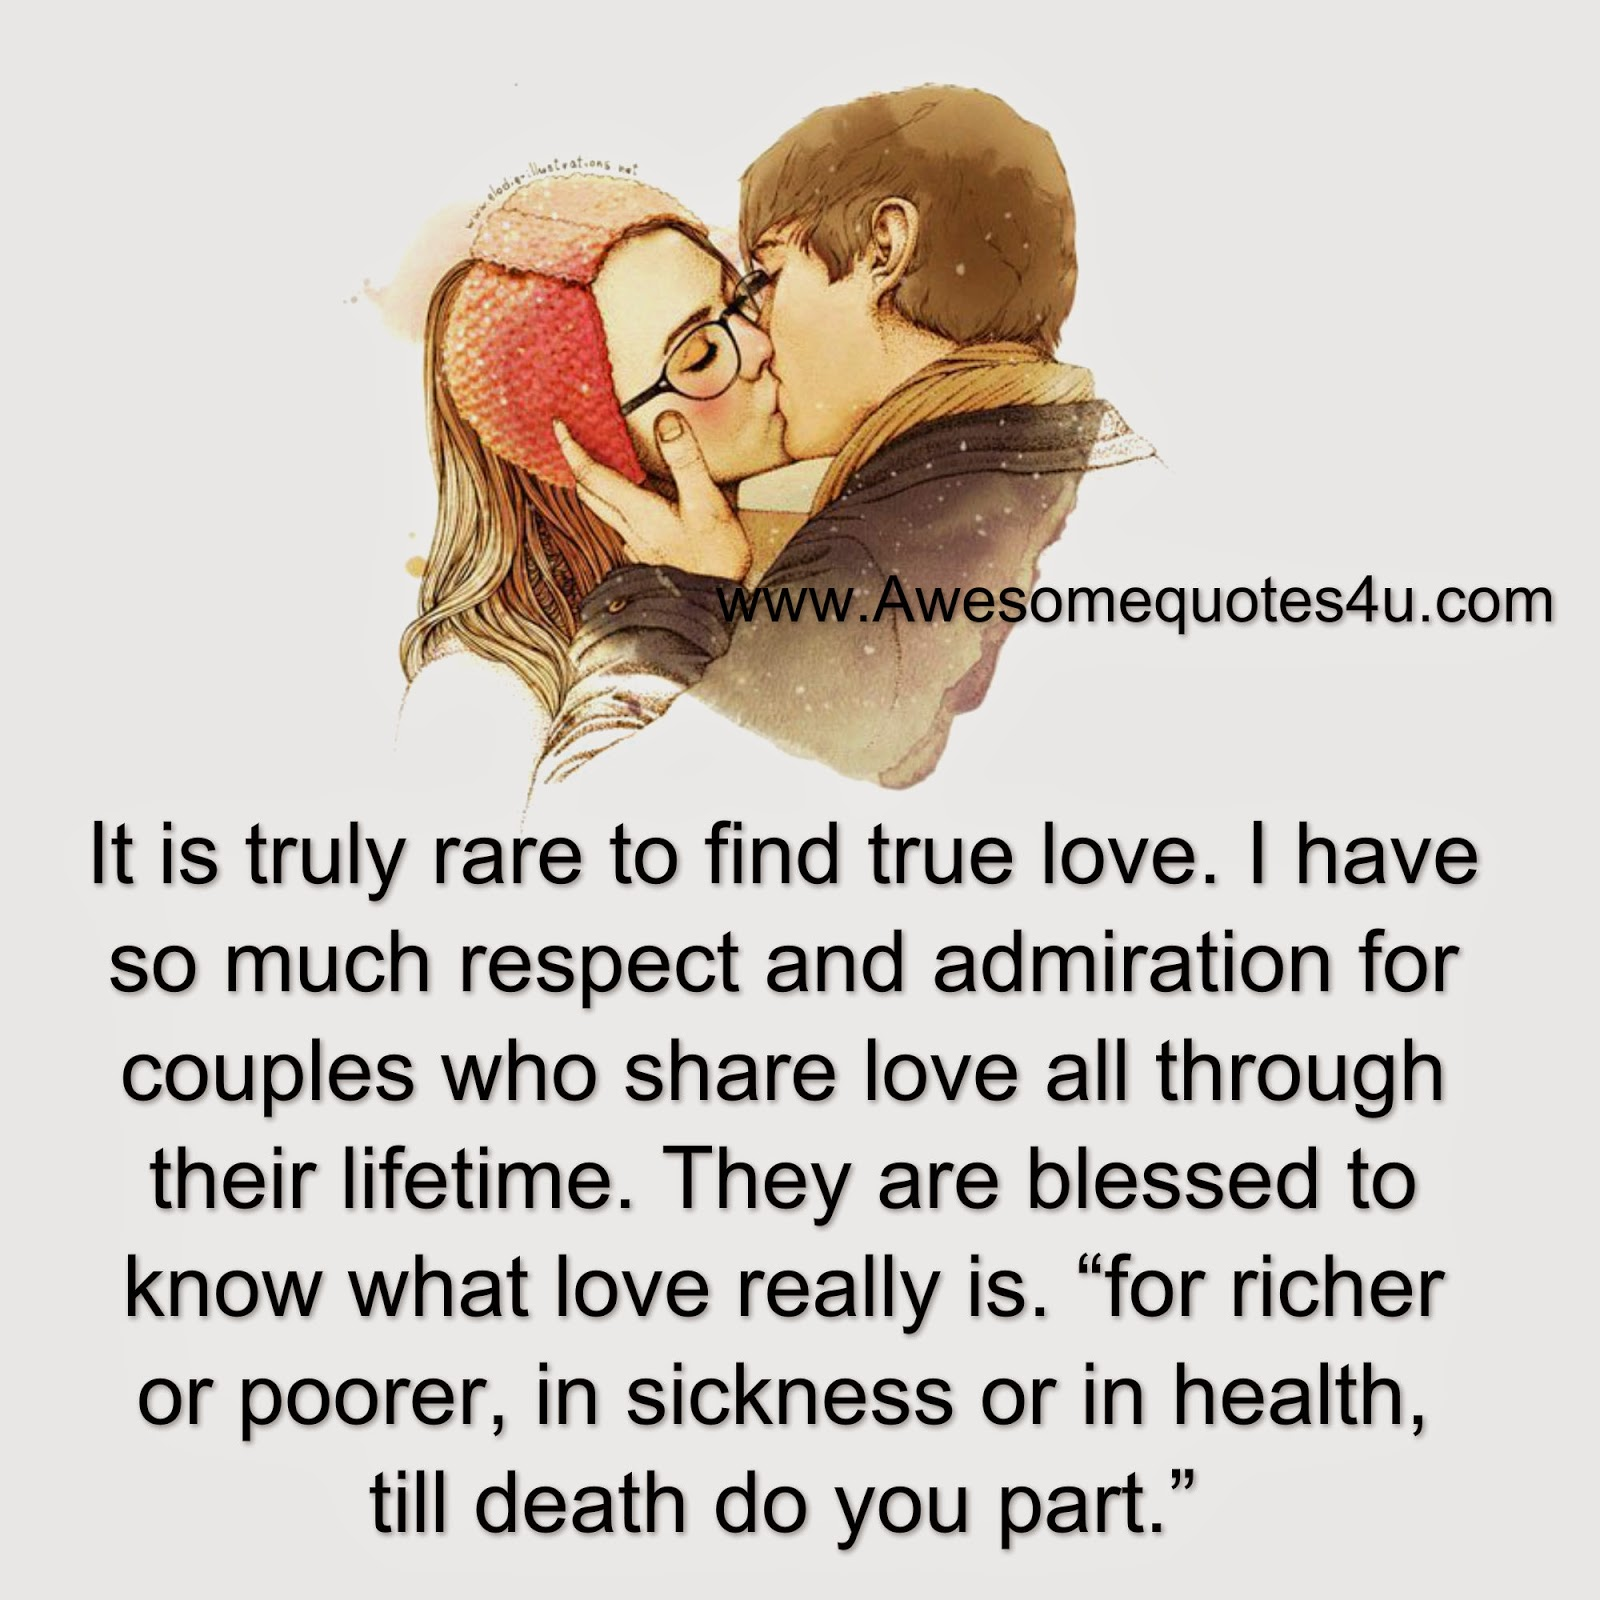 how to find true love quotes